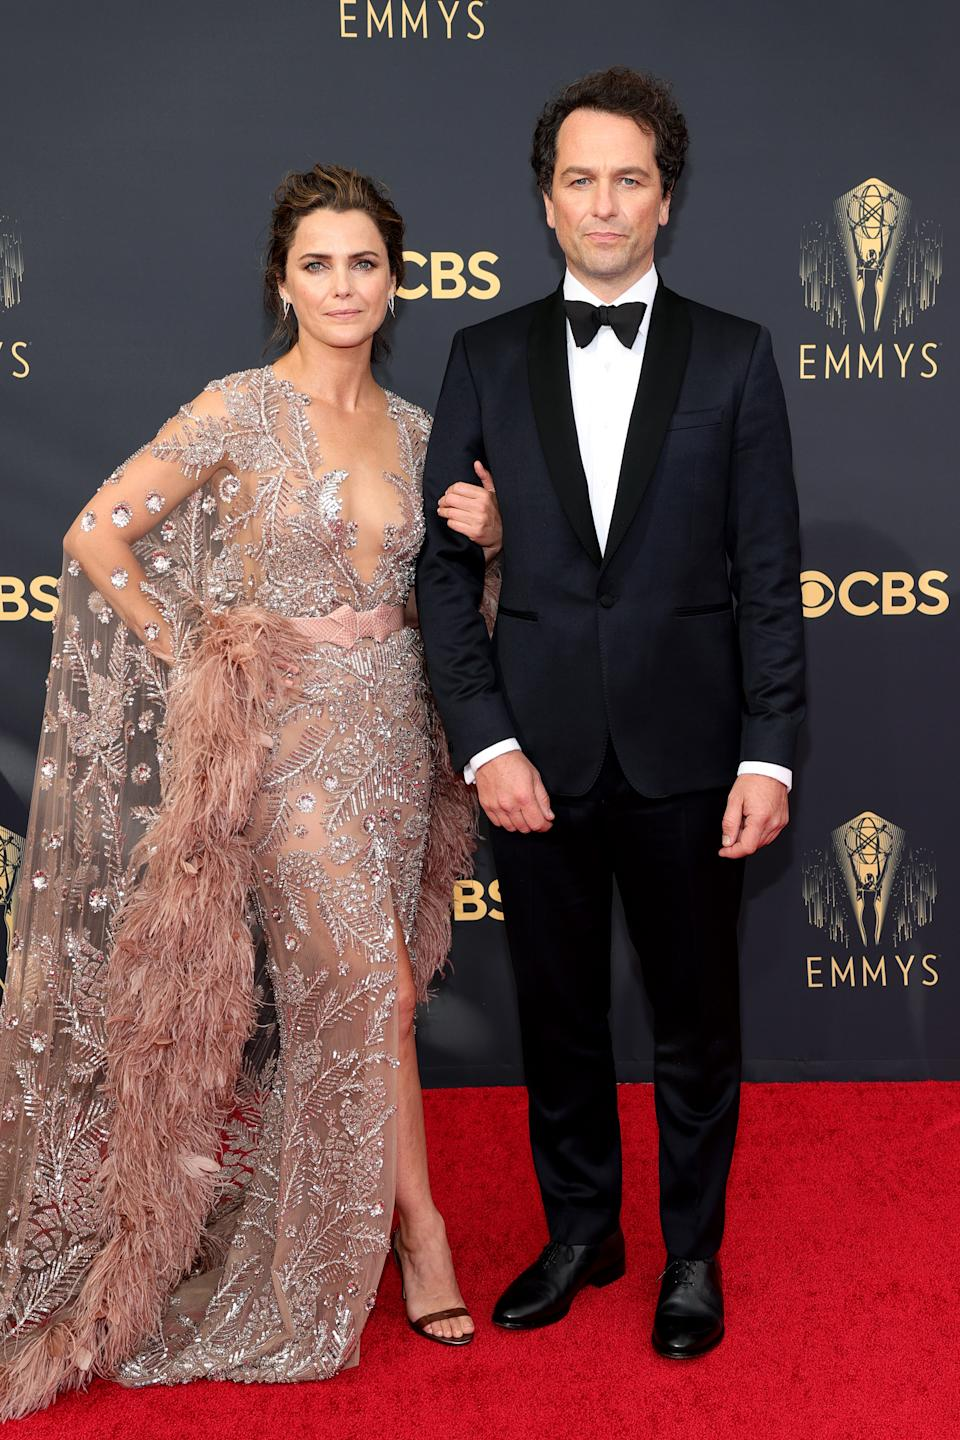 Keri Russell wears a rose gold embellished gown and Matthew Rhys wears a tuxedo at the 73rd Primetime Emmy Awards at L.A. LIVE on September 19, 2021 in Los Angeles, California. (Photo by Rich Fury/Getty Images)